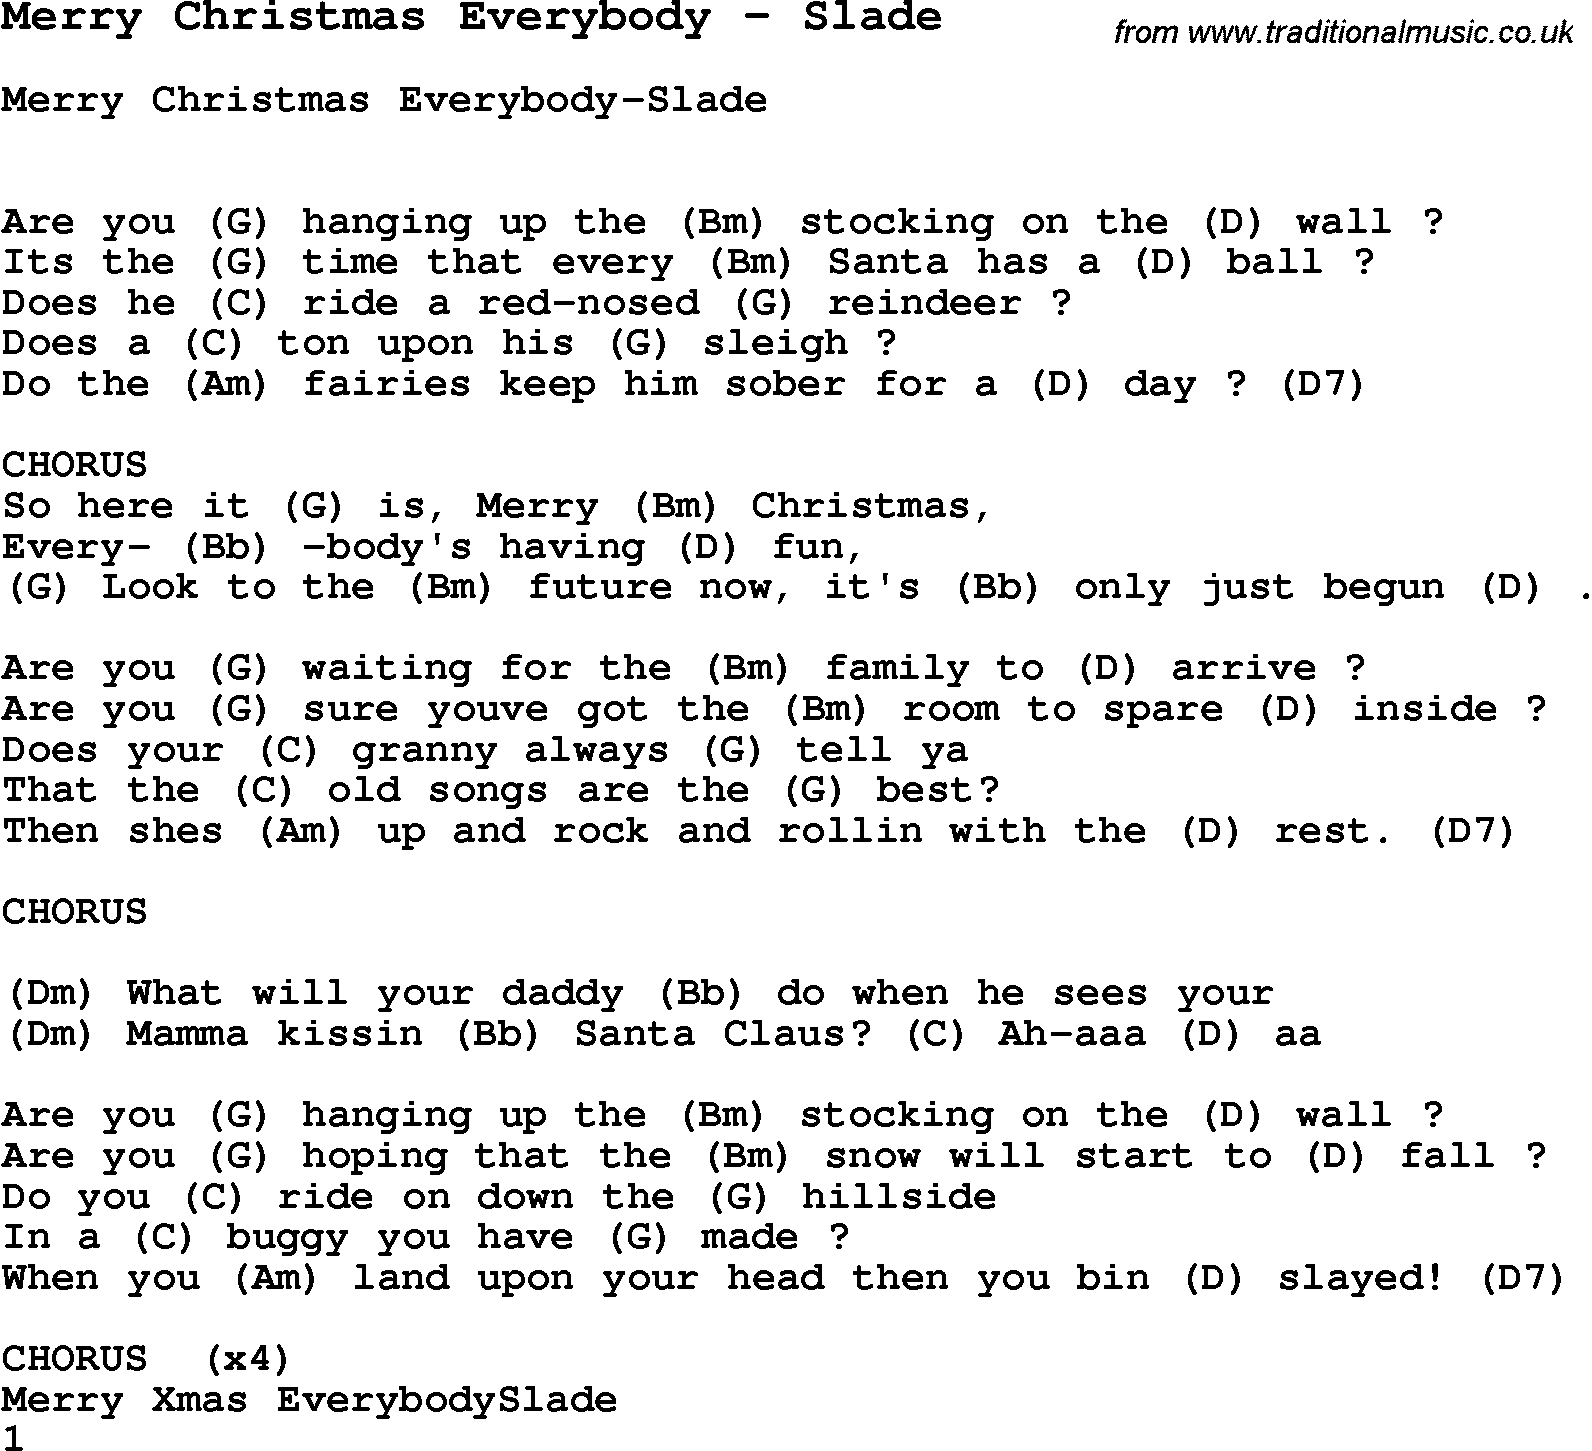 Merry Christmas Song Lyrics Song Merry Christmas Everybody